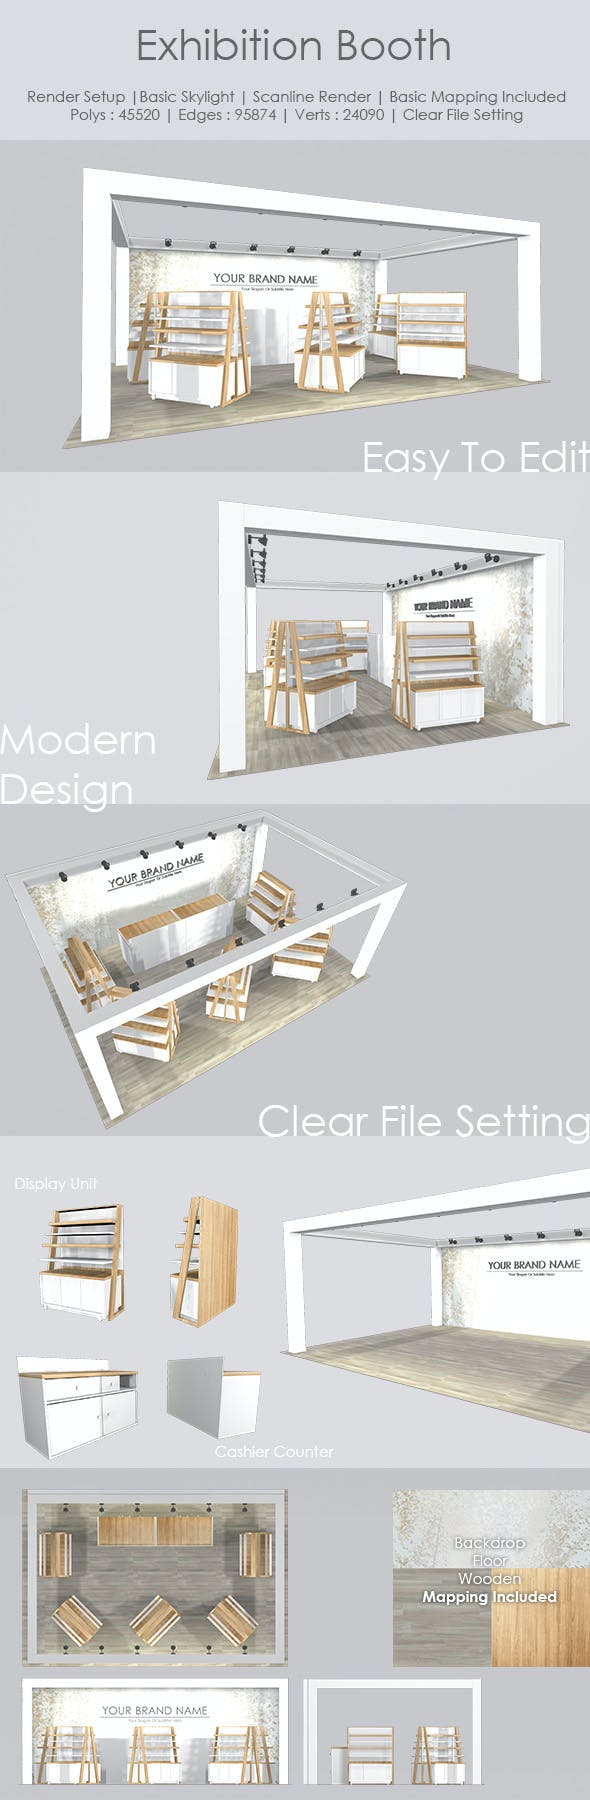 Exhibition Booth - 3DOcean Item for Sale